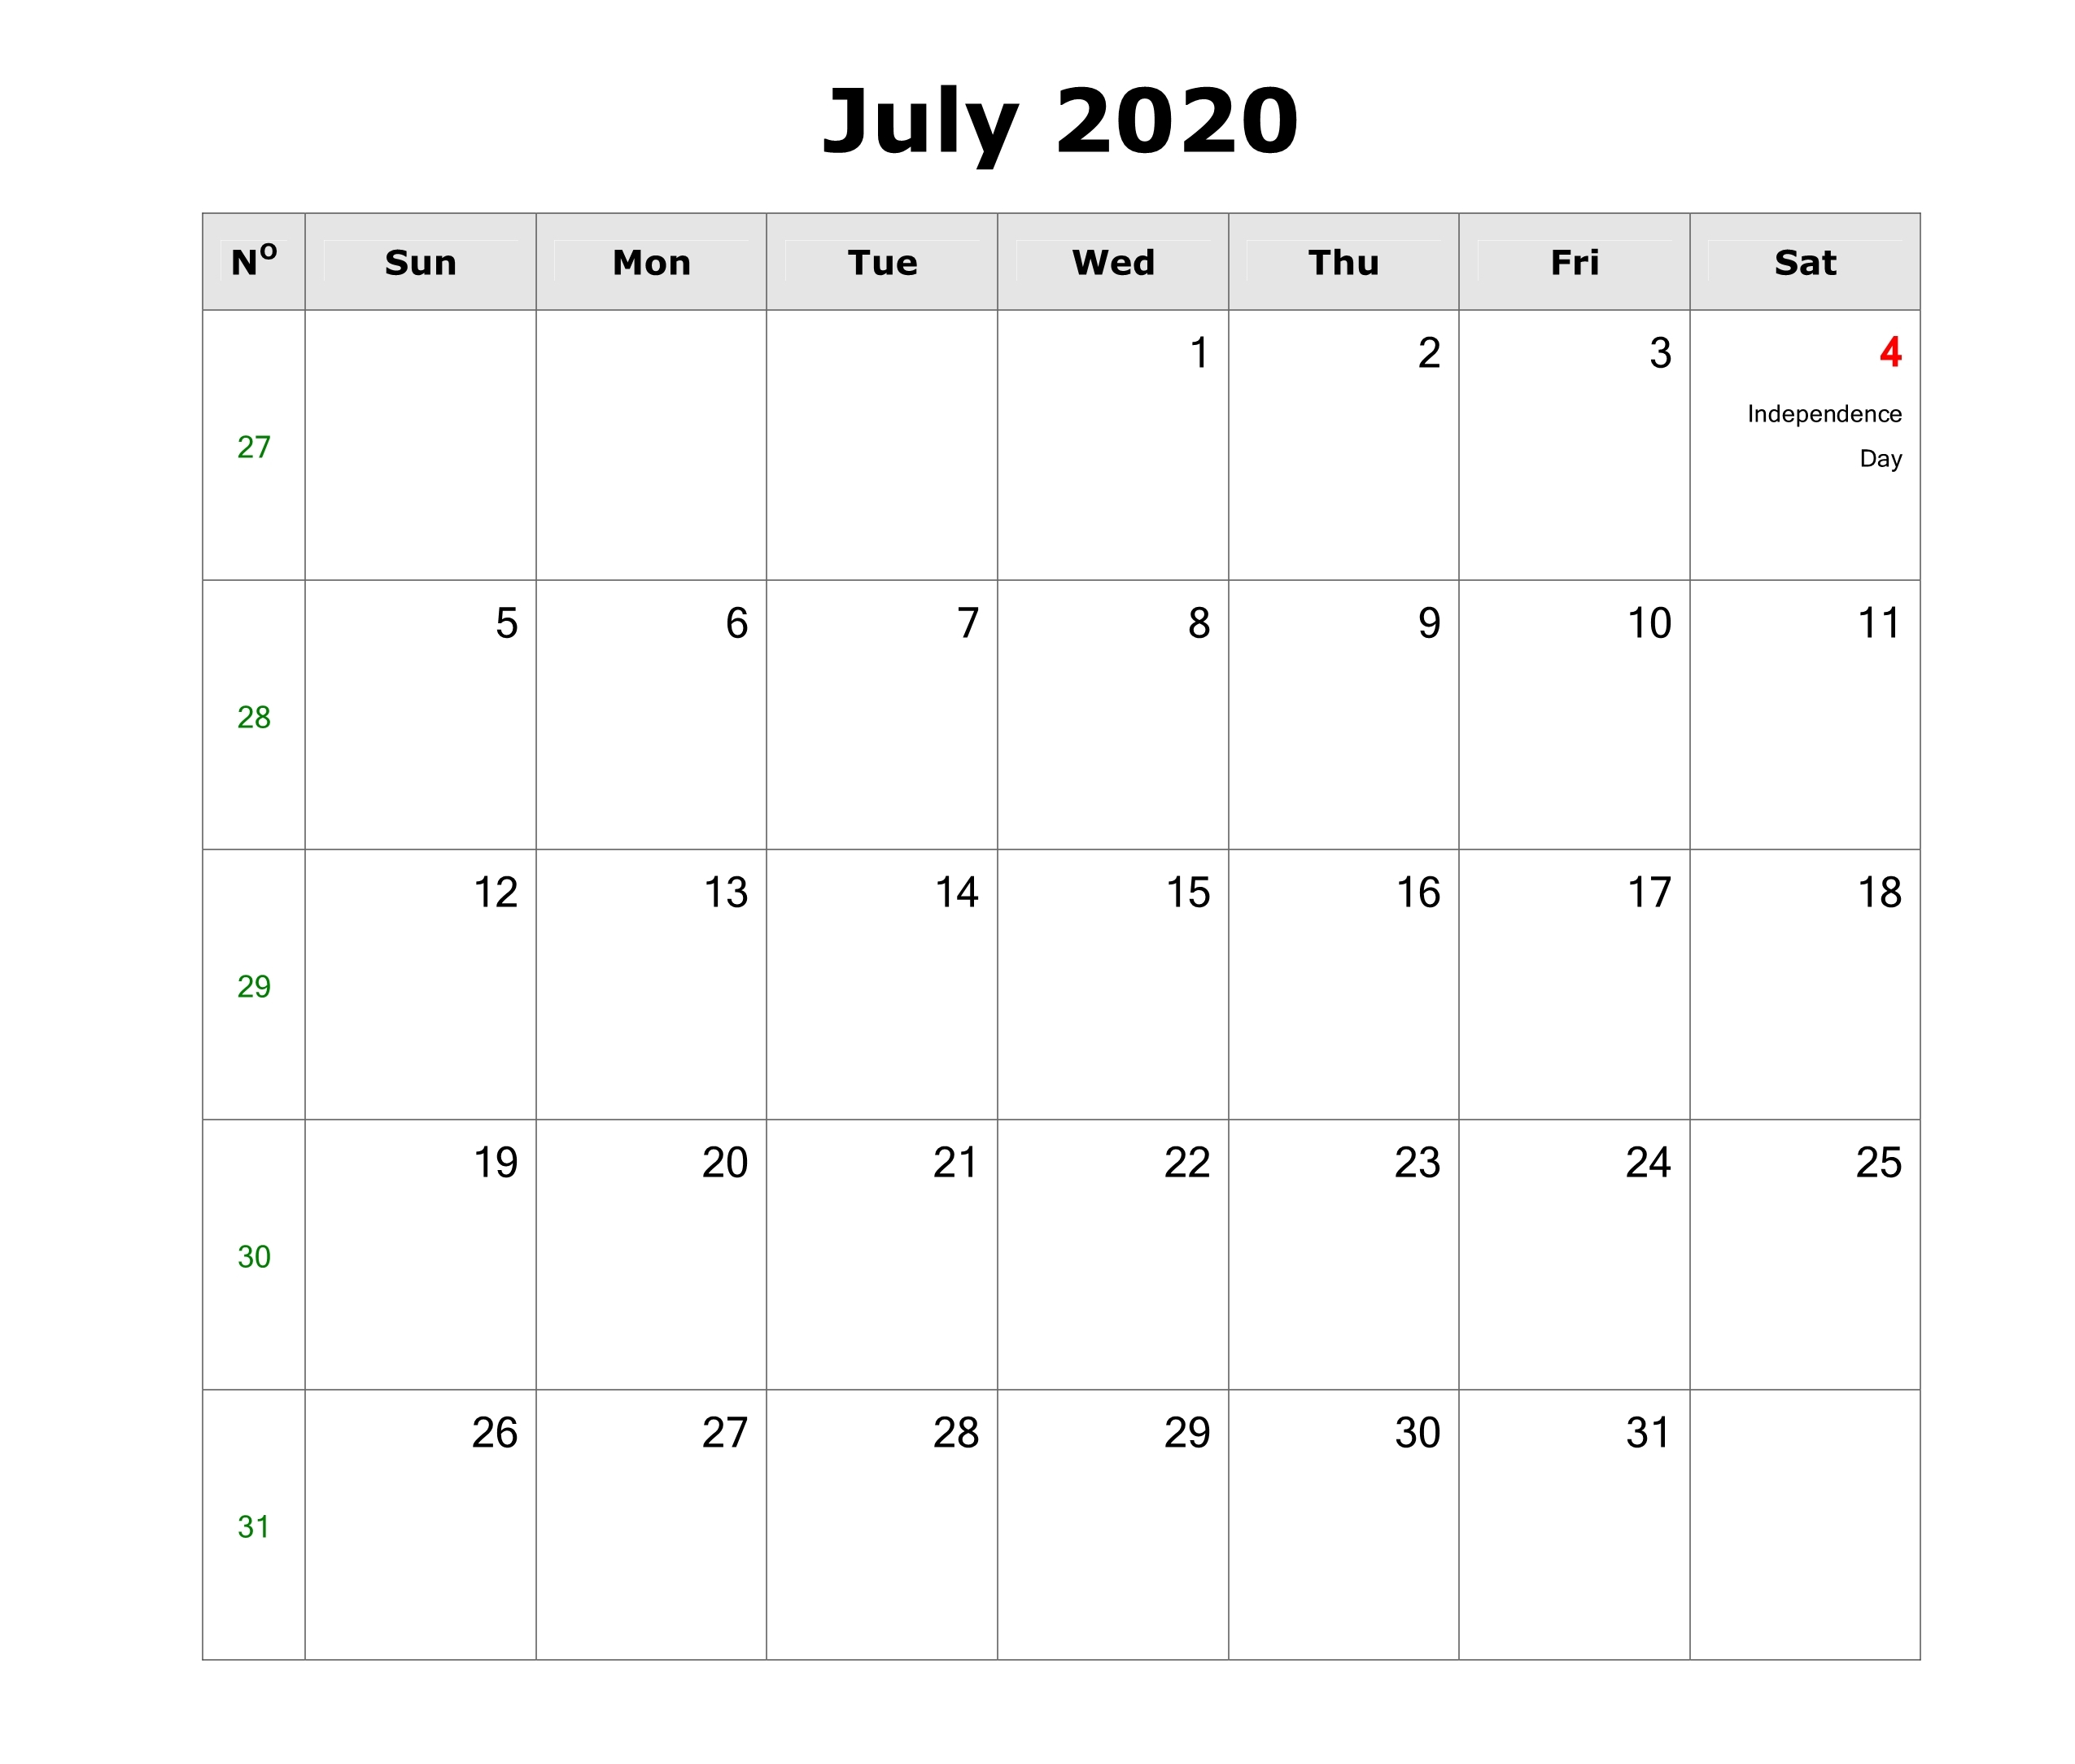 July Calendar For 2020.Awesome July 2020 Calendar Pdf Word Excel Template